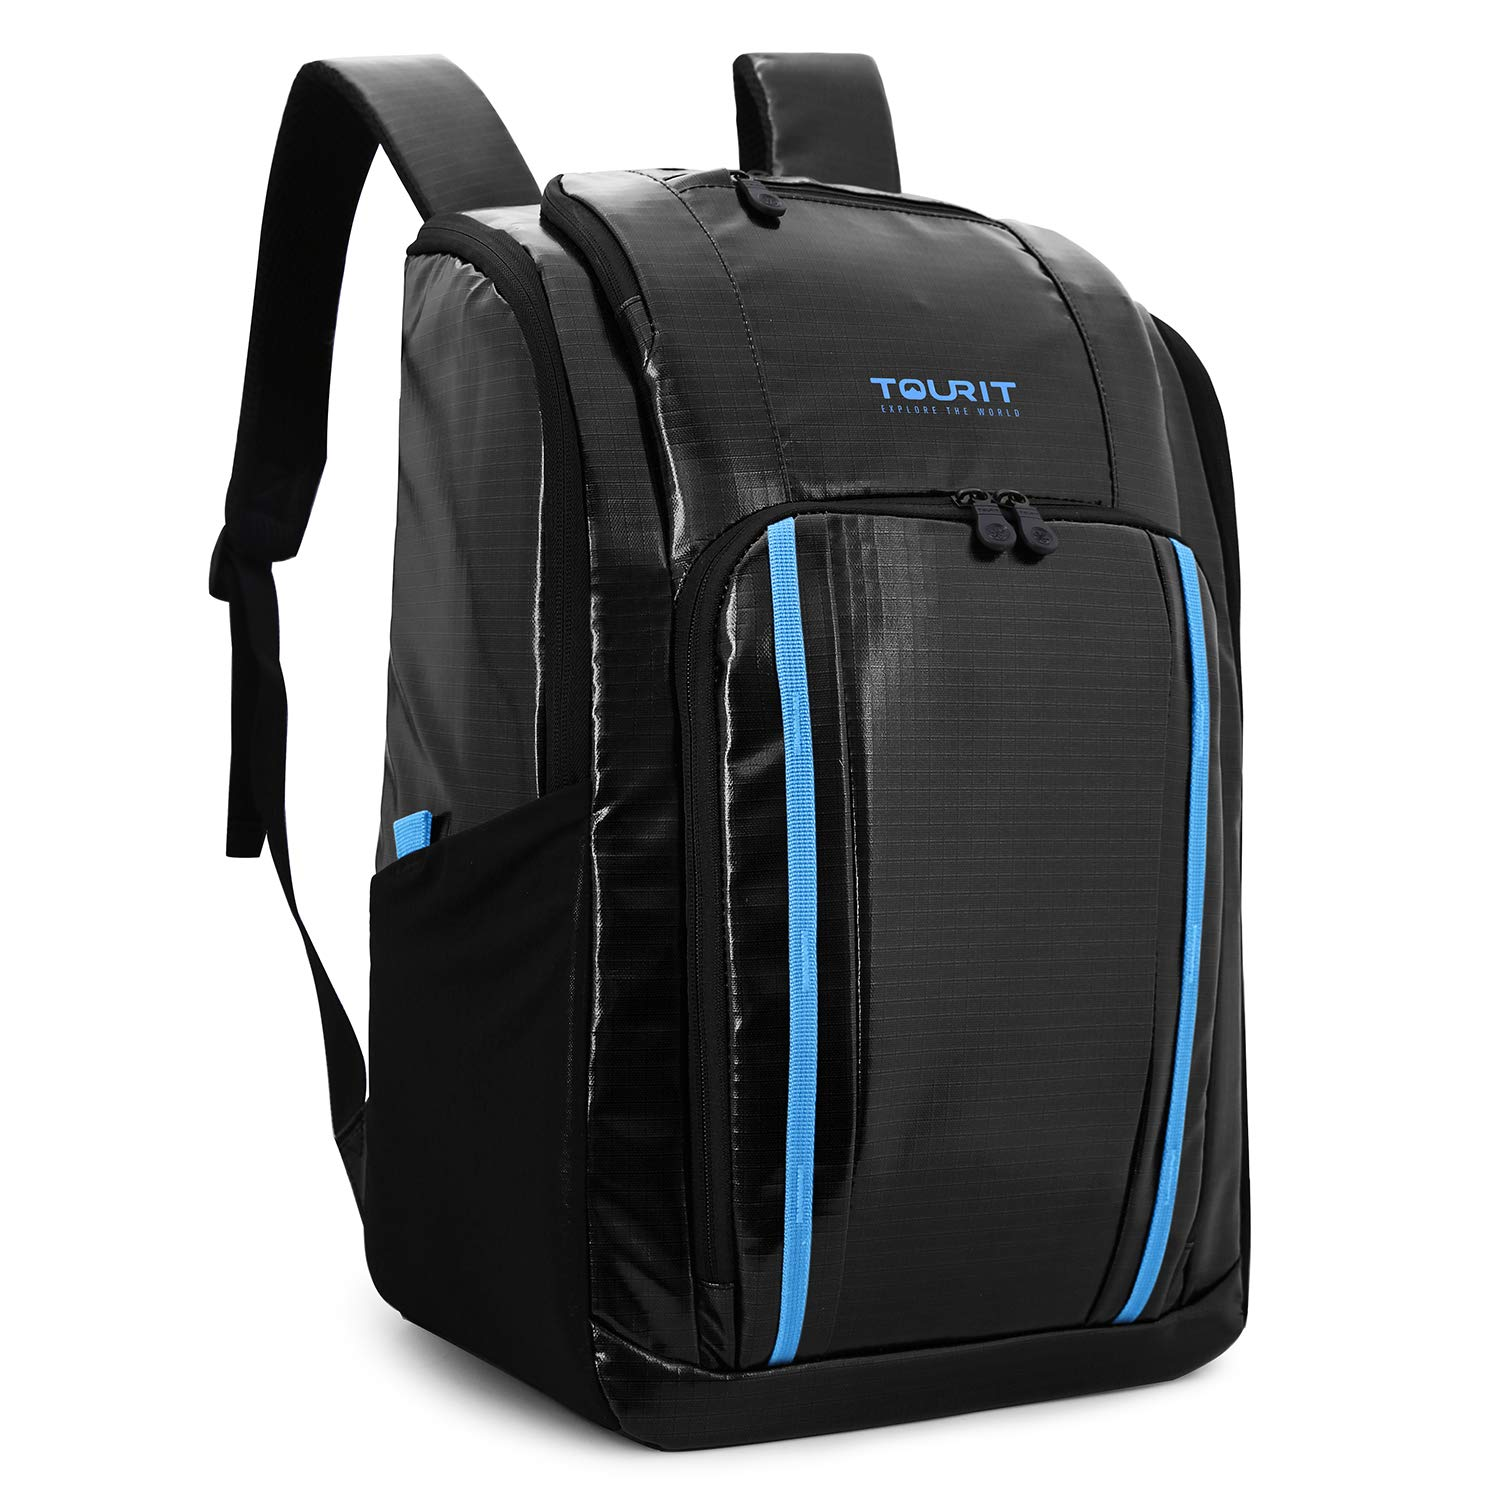 TOURIT Cooler Backpack Insulated Leakproof Backpack Cooler Soft Cooler with TPU Material for Lunch Picnic Hiking Camping Beach Park or Day Trip 32 Cans